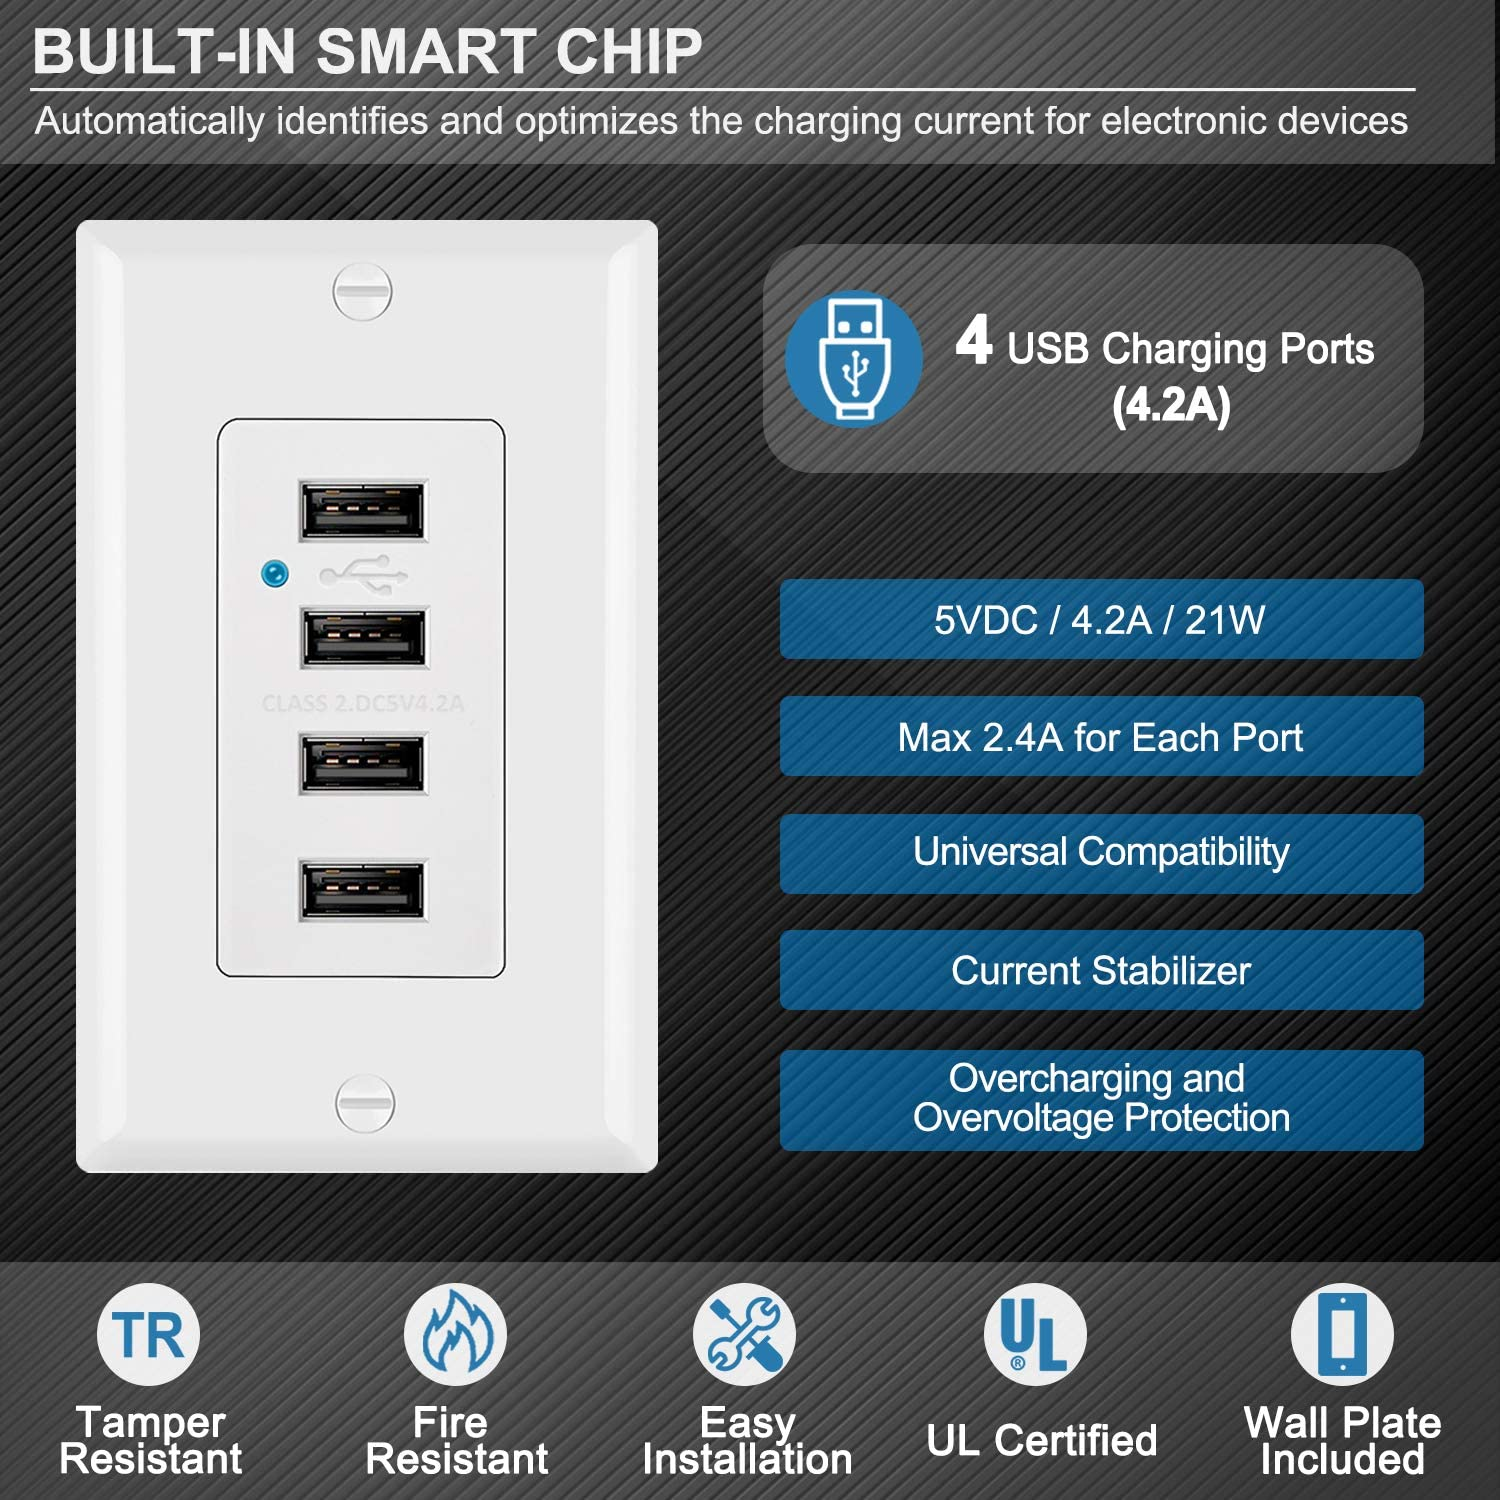 Wall Plate Included White UL Listed BESTTEN 4.2A//21W USB Receptacle Outlet with 4 High-Speed USB Charging Ports and LED Indicator